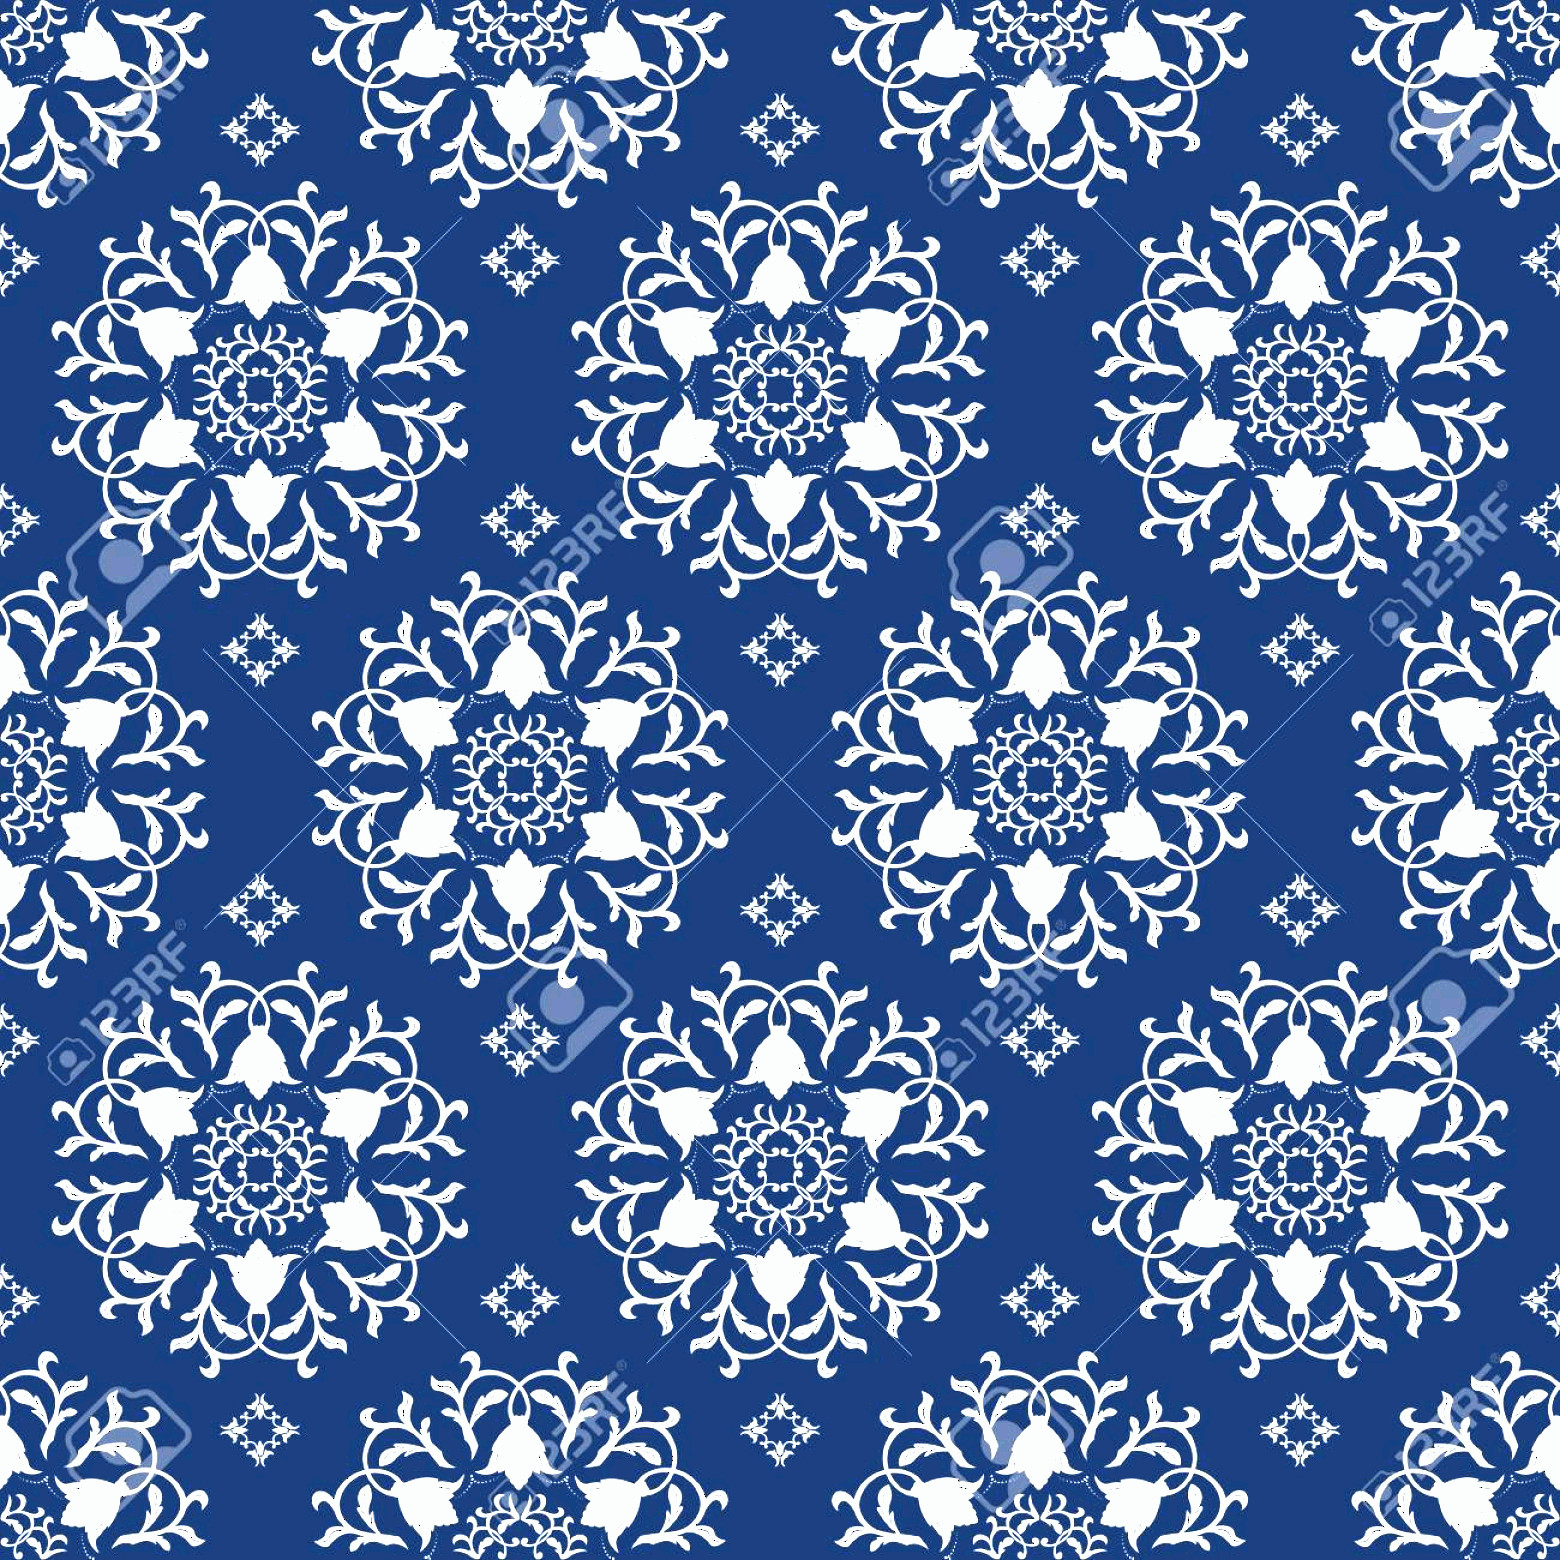 Blue And White Damask Vectors: Photostock Vector Floral Pattern Wallpaper Baroque Damask Seamless Vector Background Dark Blue And White Ornament